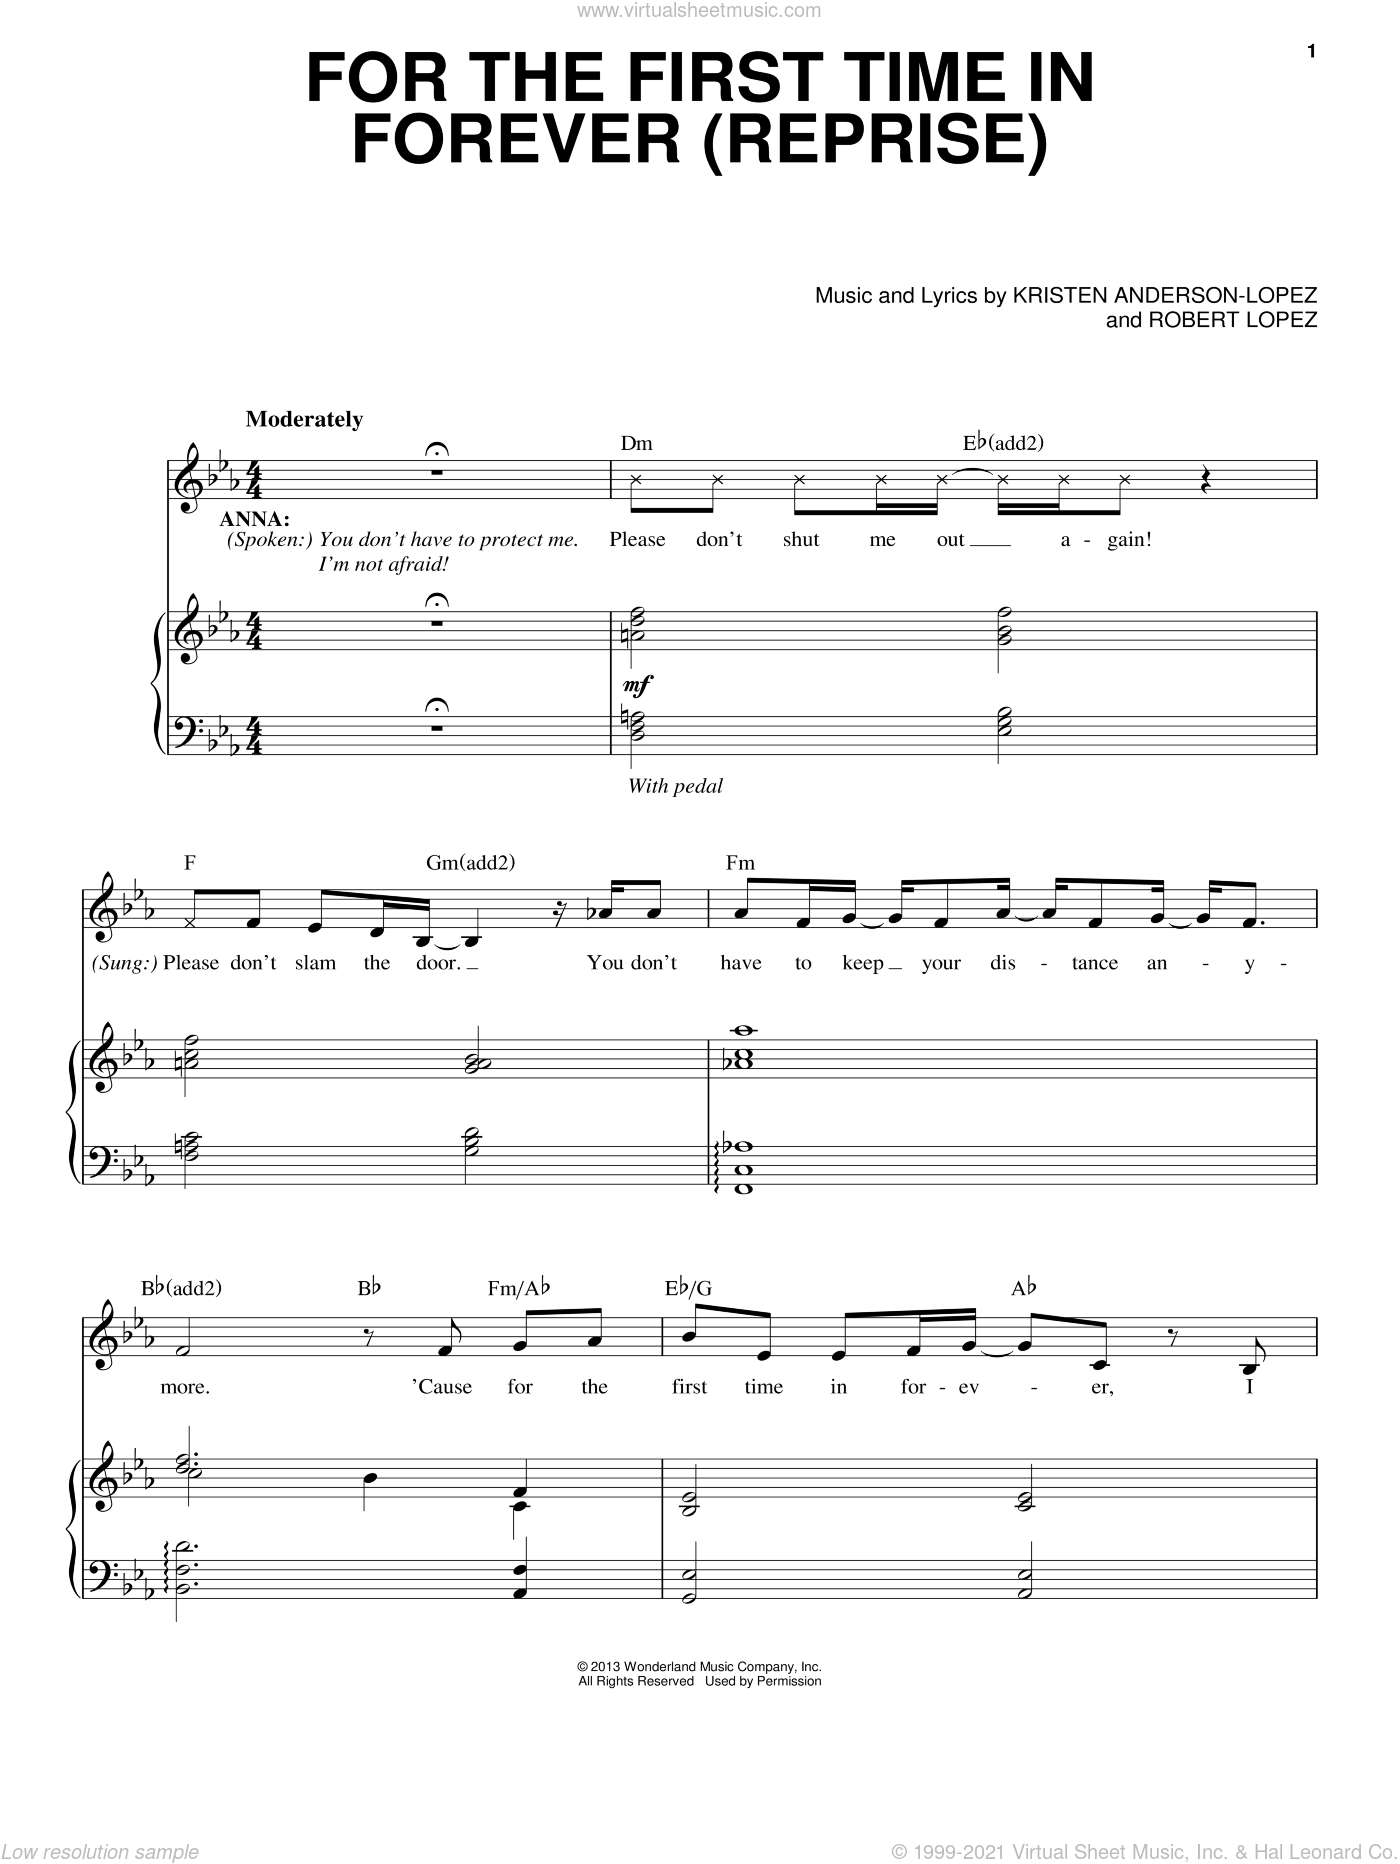 For The First Time In Forever (Reprise) (from Frozen) sheet music for voice and piano by Robert Lopez and Kristen Anderson-Lopez, intermediate skill level